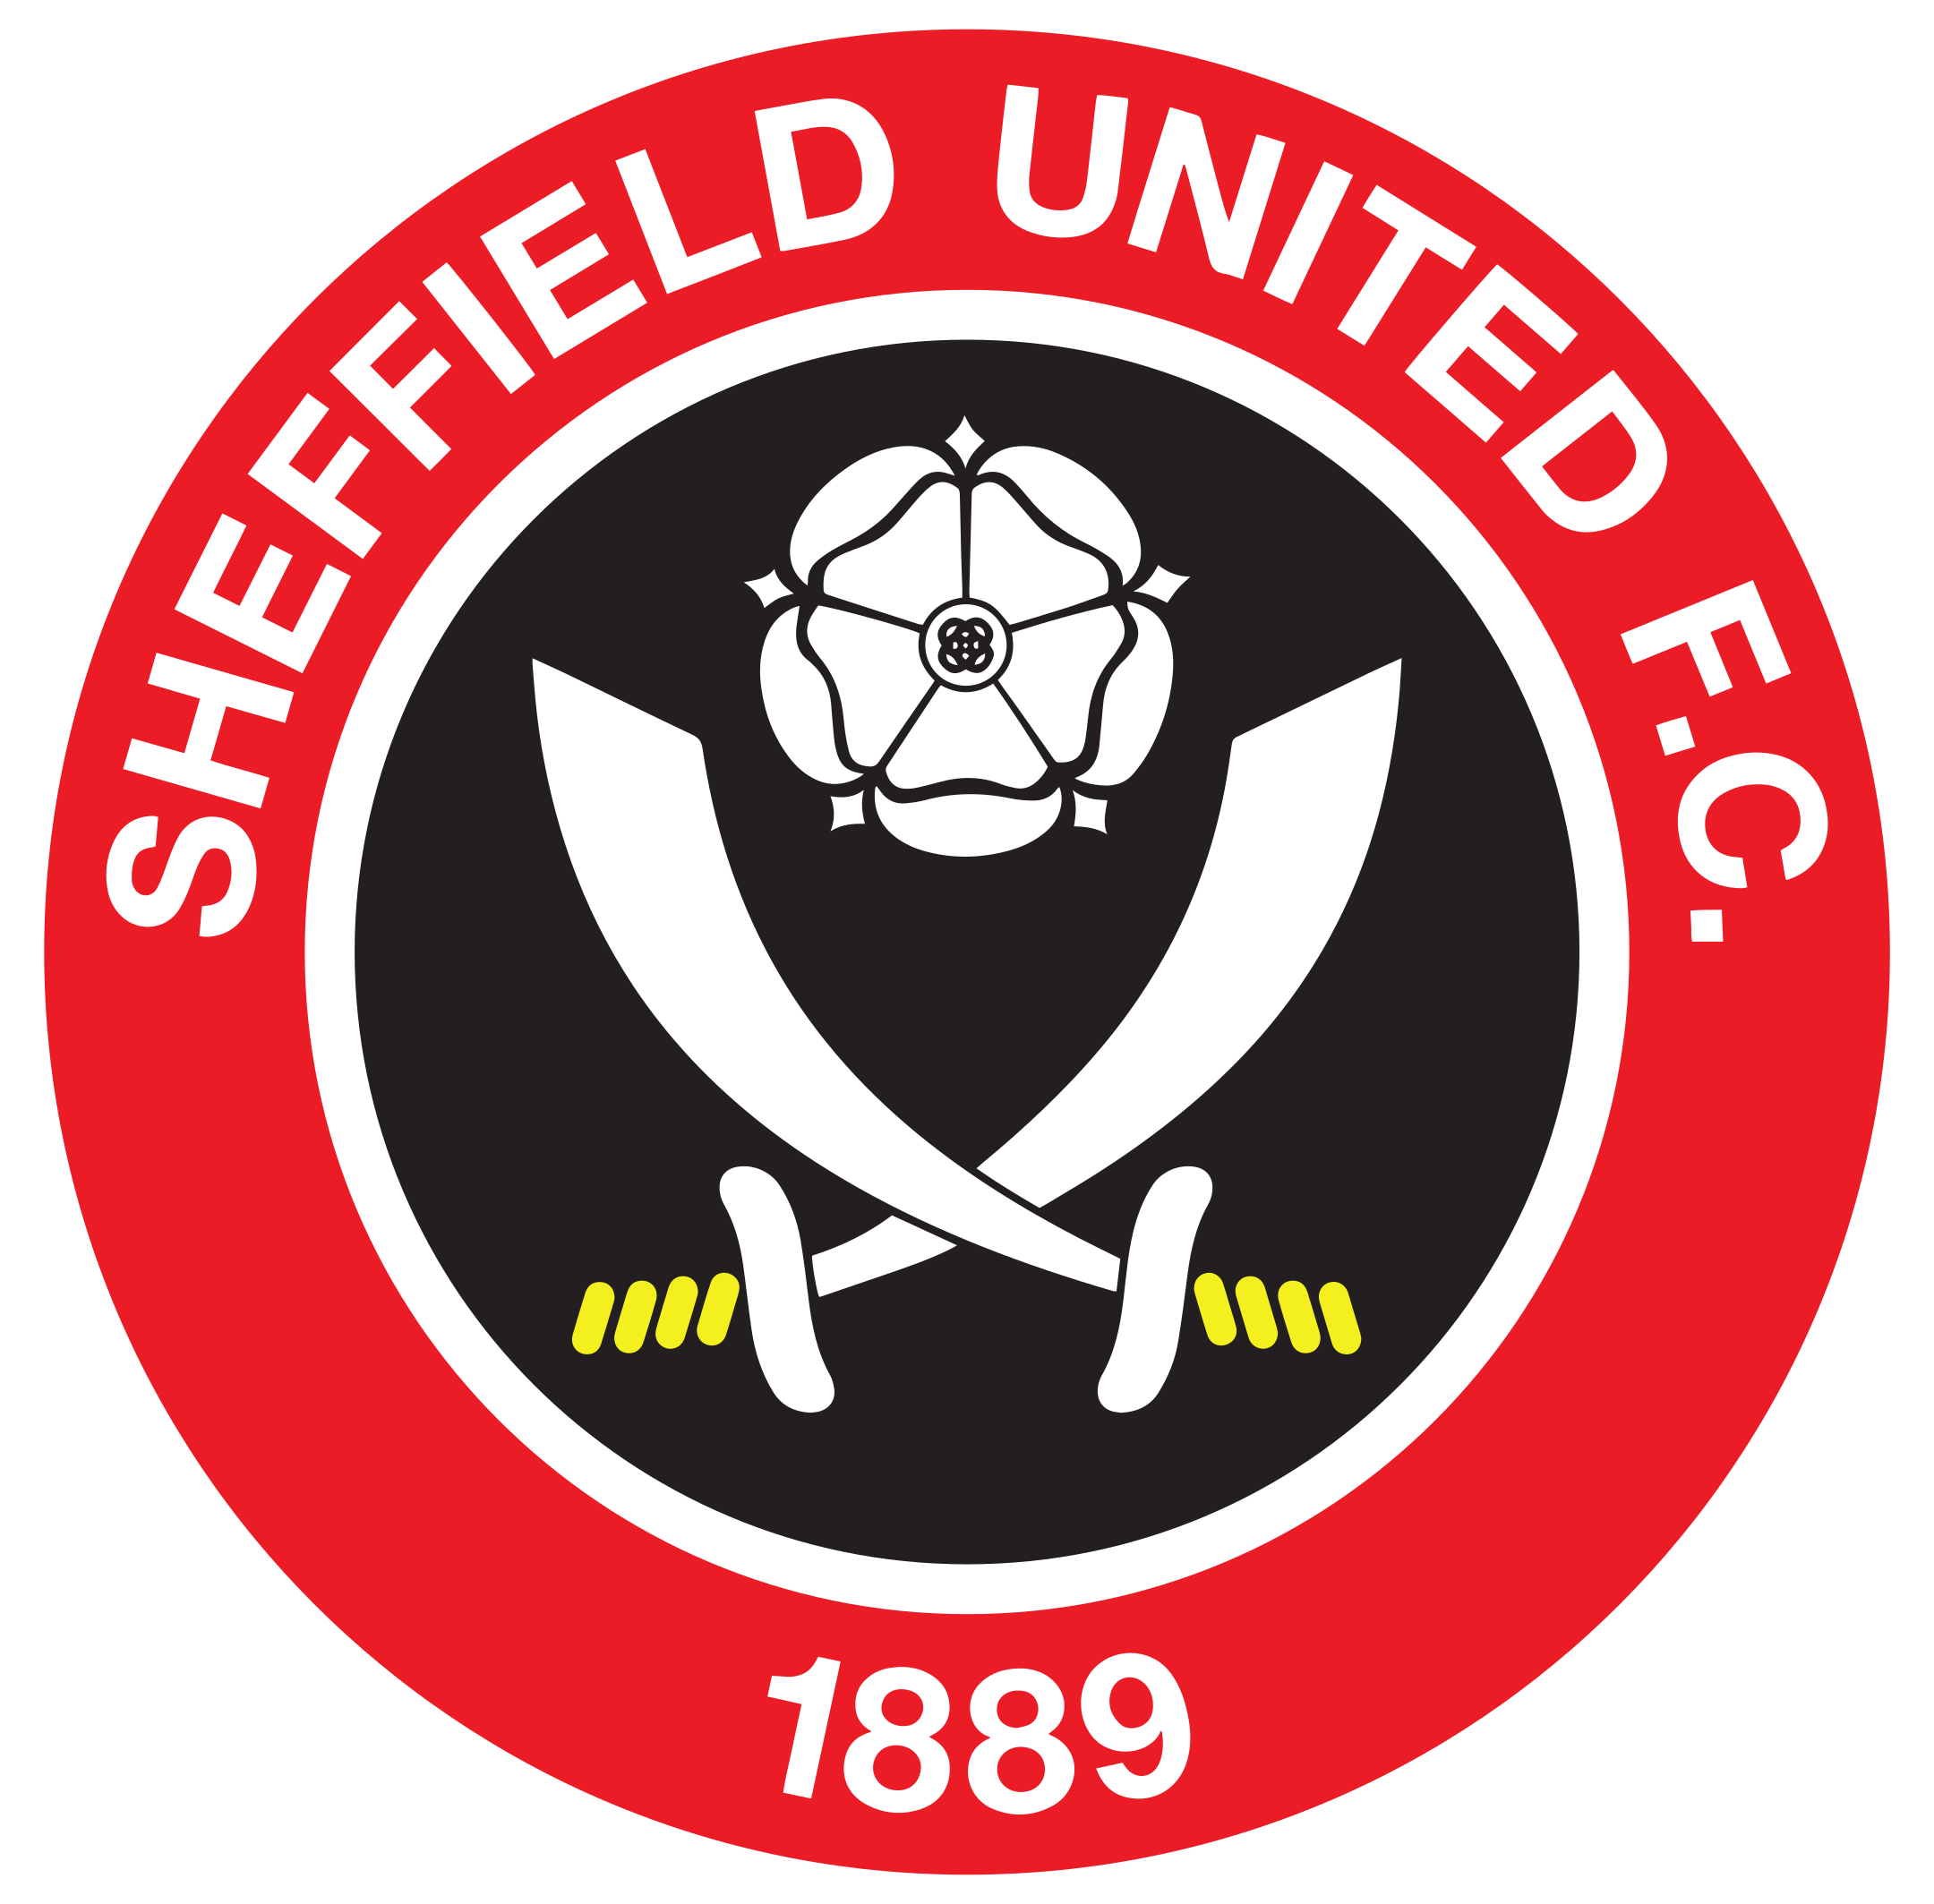 sheffield united logo 1 - Sheffield United FC Logo